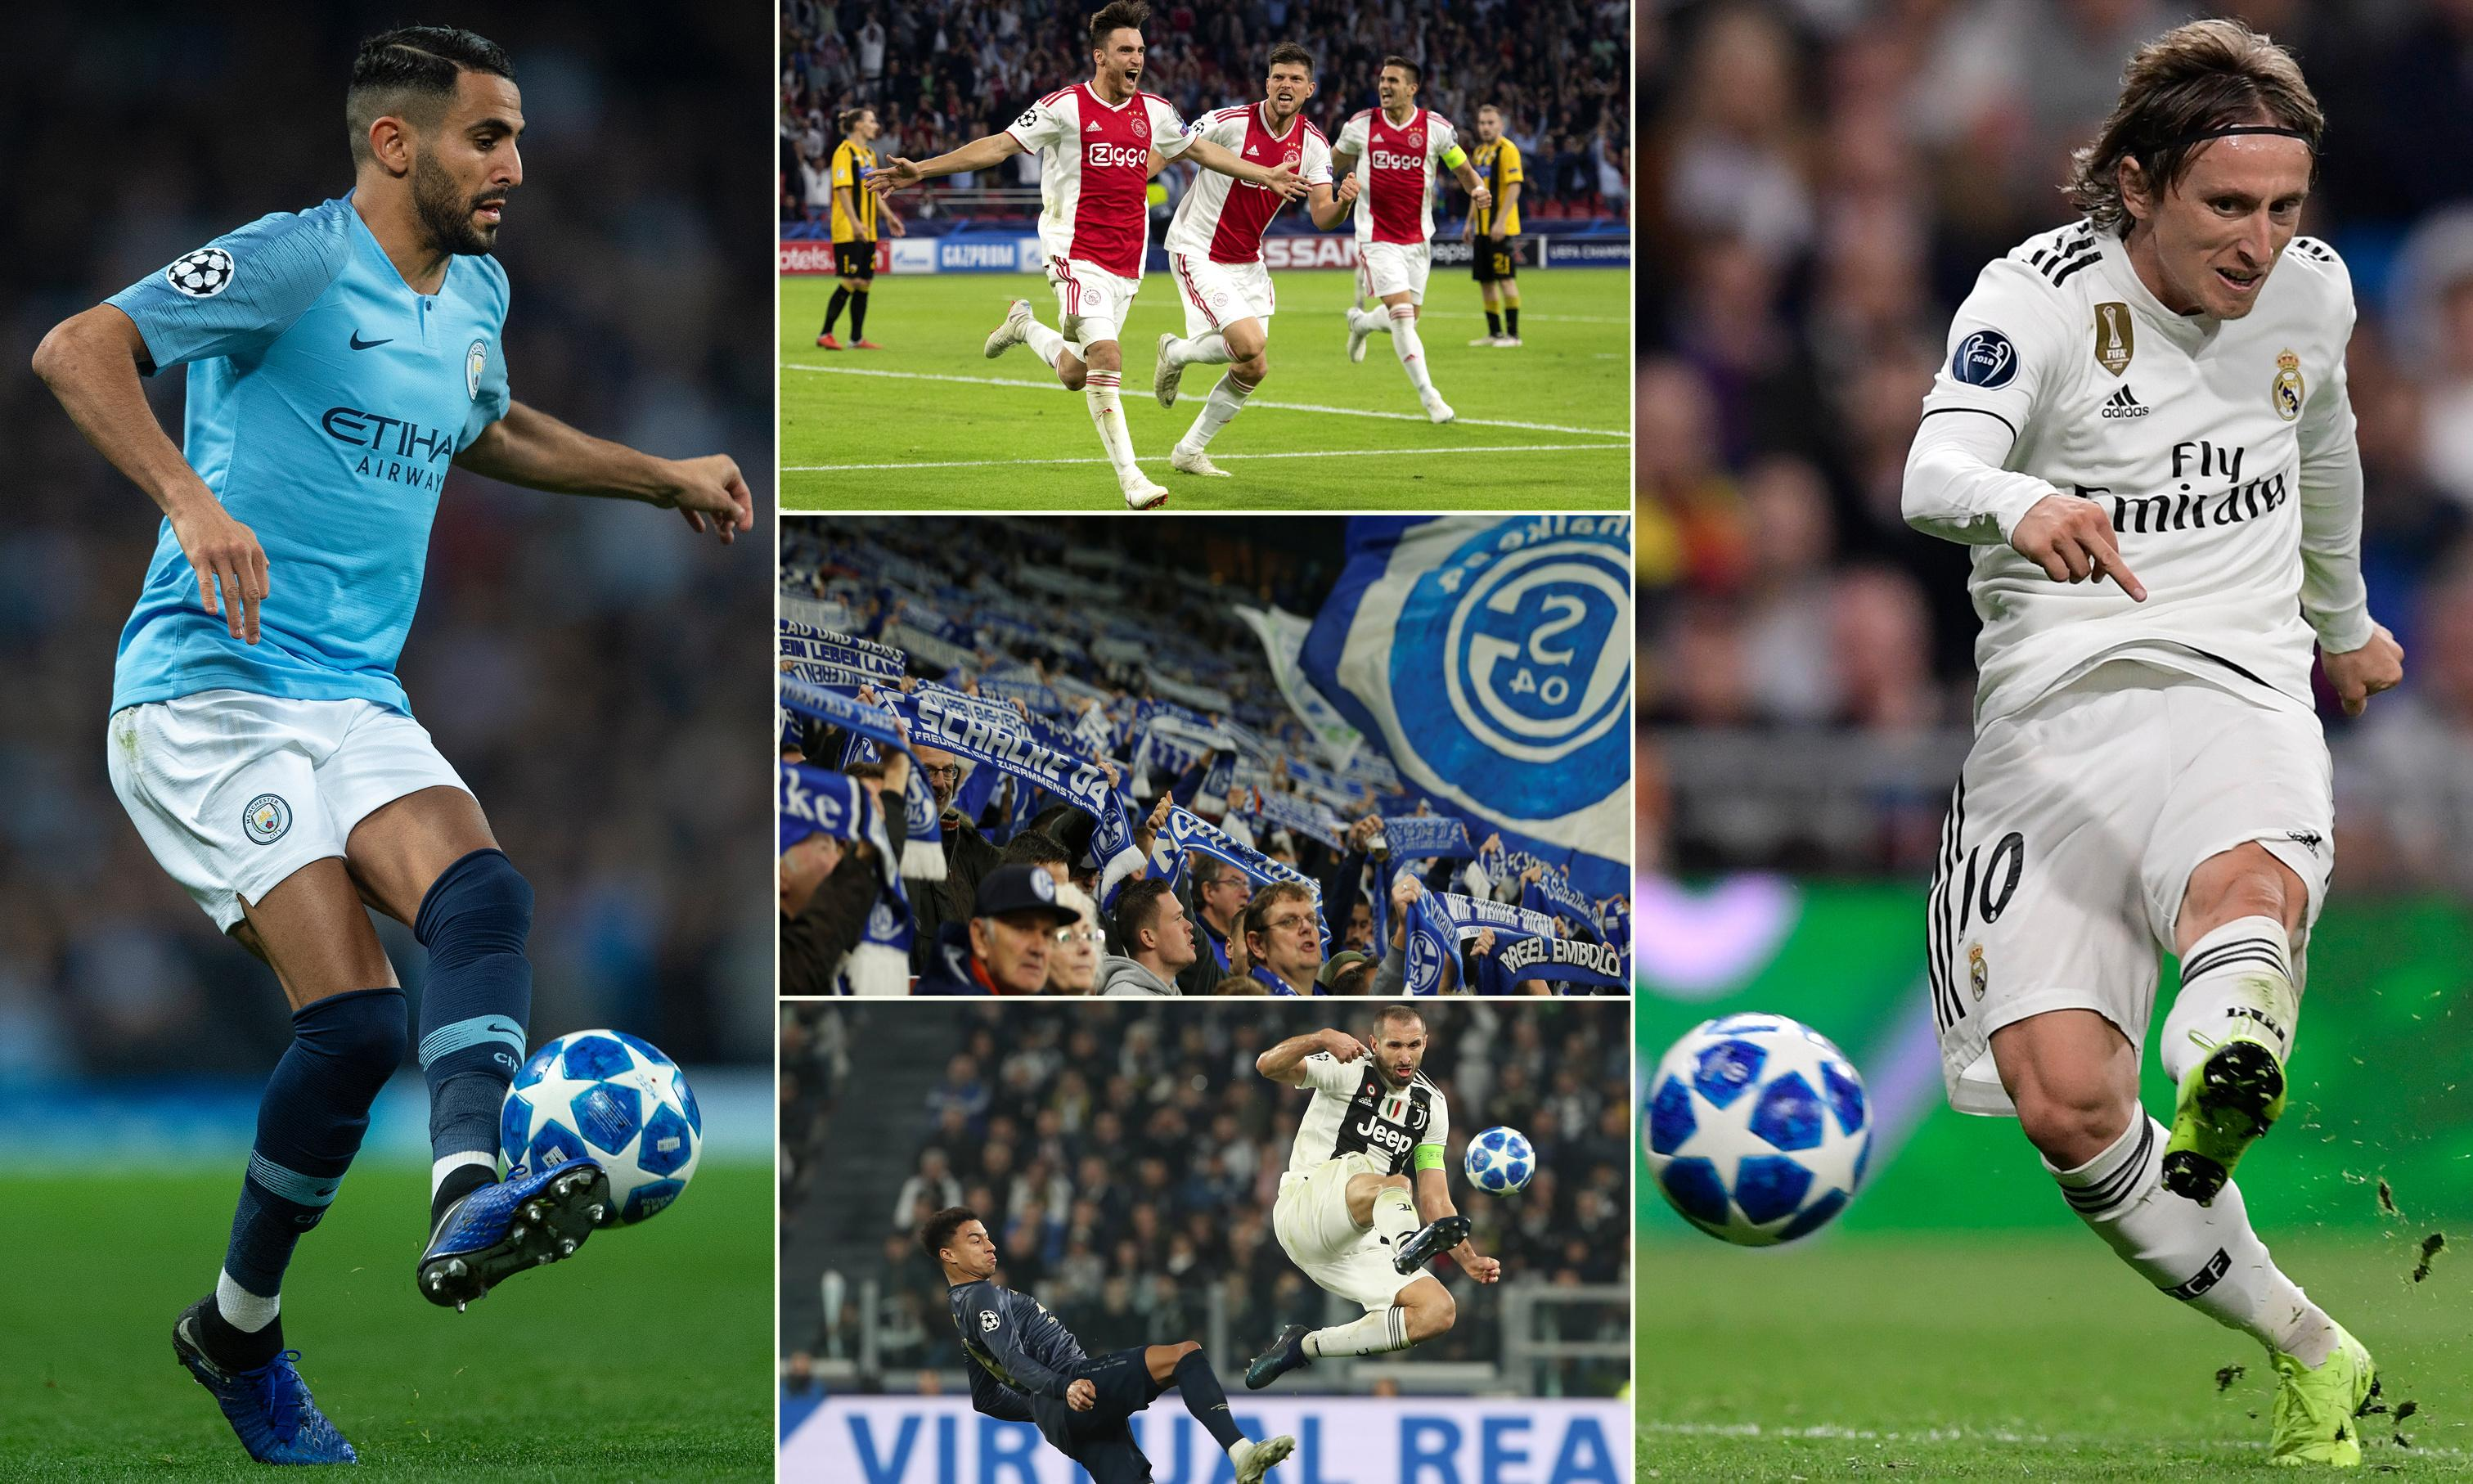 Champions League: how far will the 16 teams go in the knockout stages?